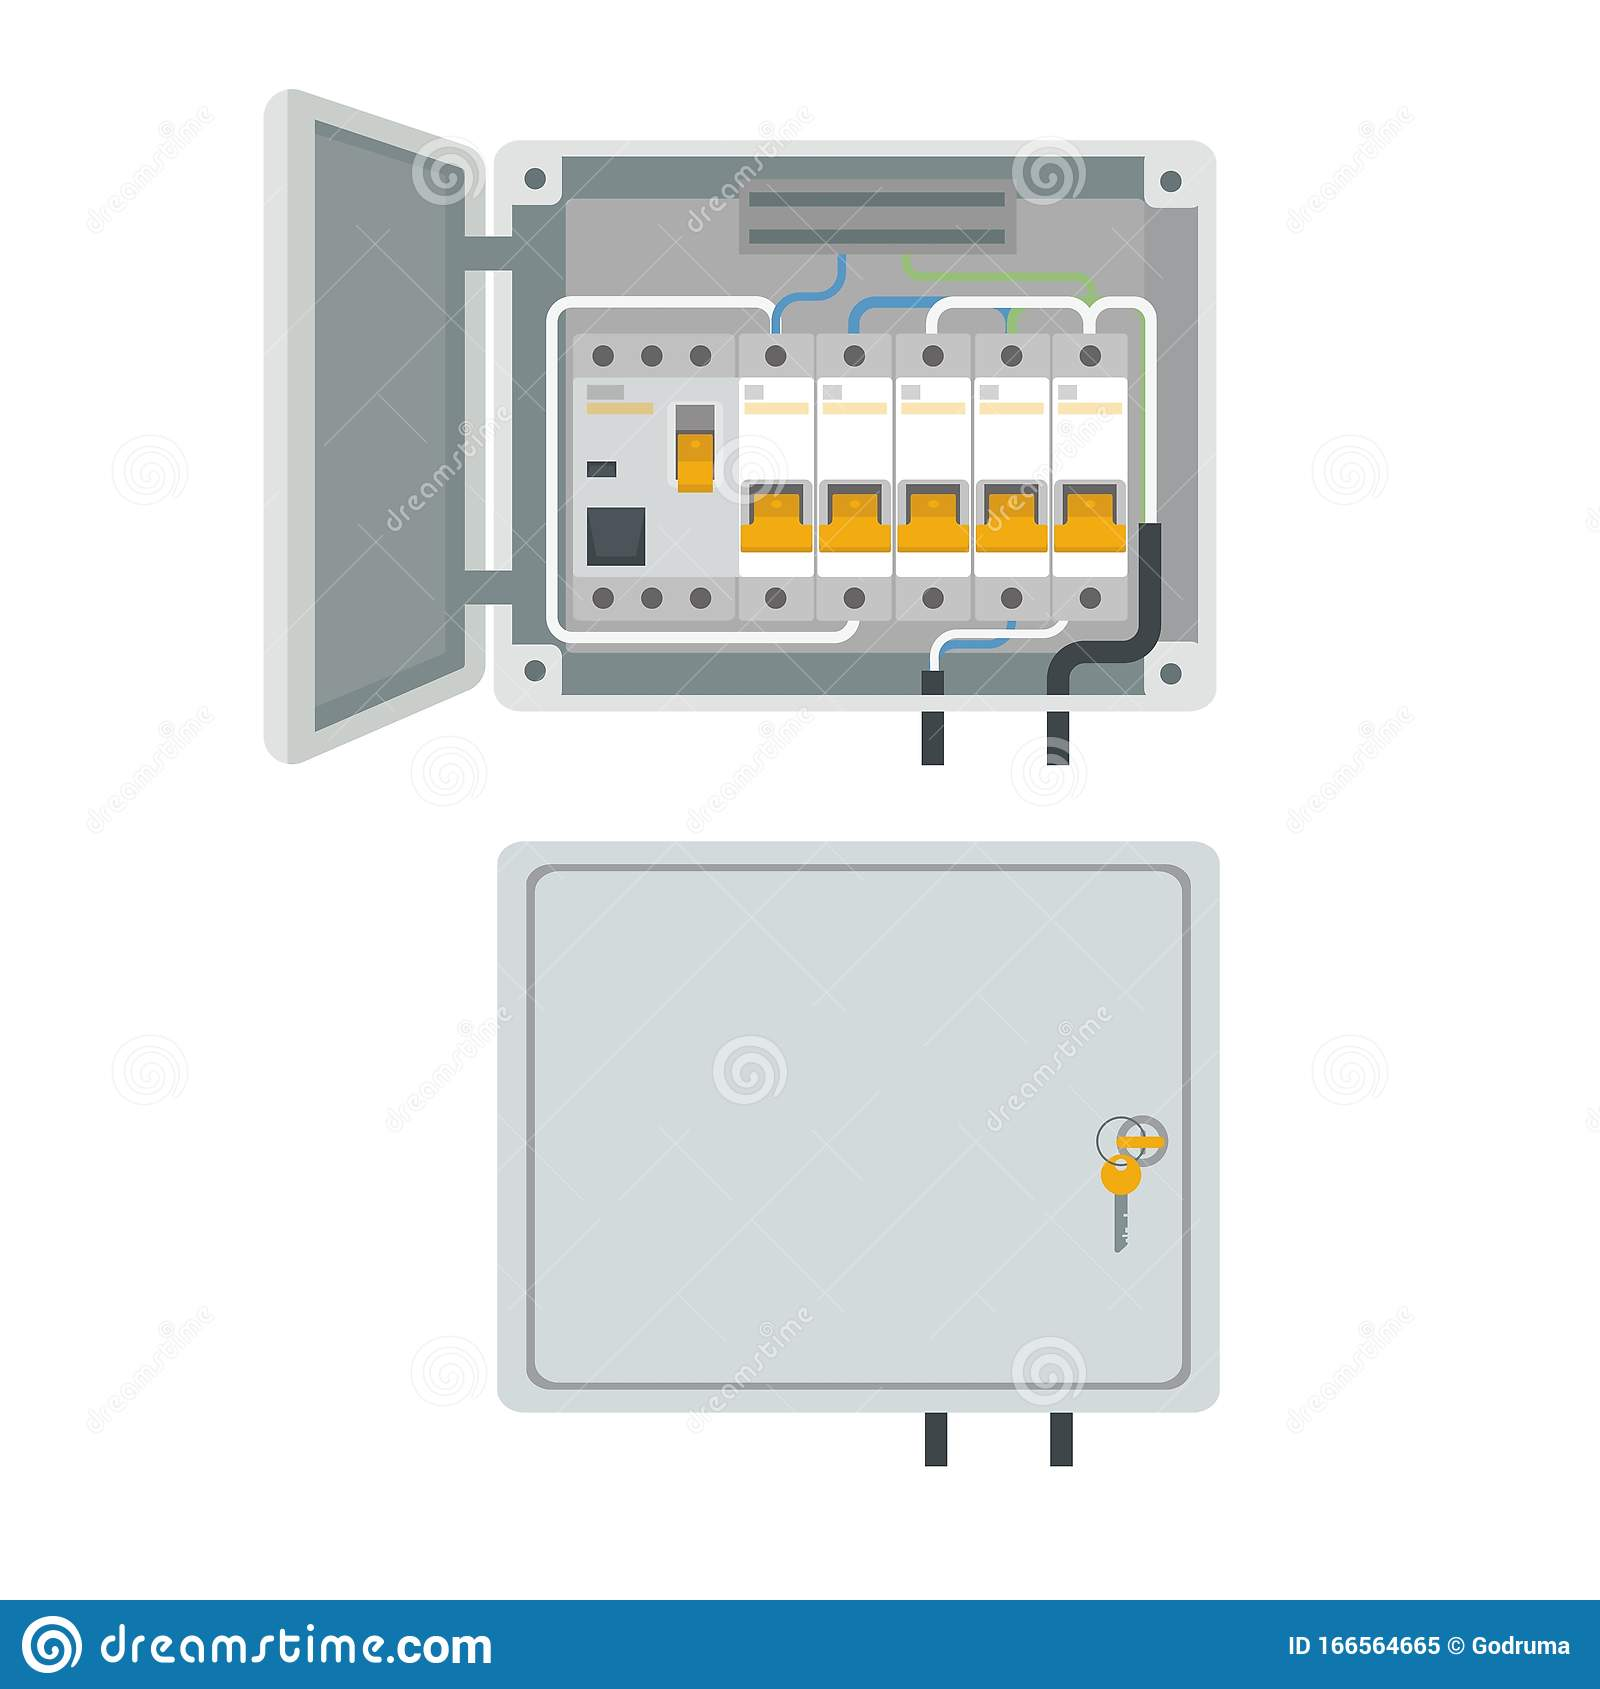 Electricity Fuse Stock Illustrations – 1,287 Electricity Fuse Stock  Illustrations, Vectors & Clipart - DreamstimeDreamstime.com